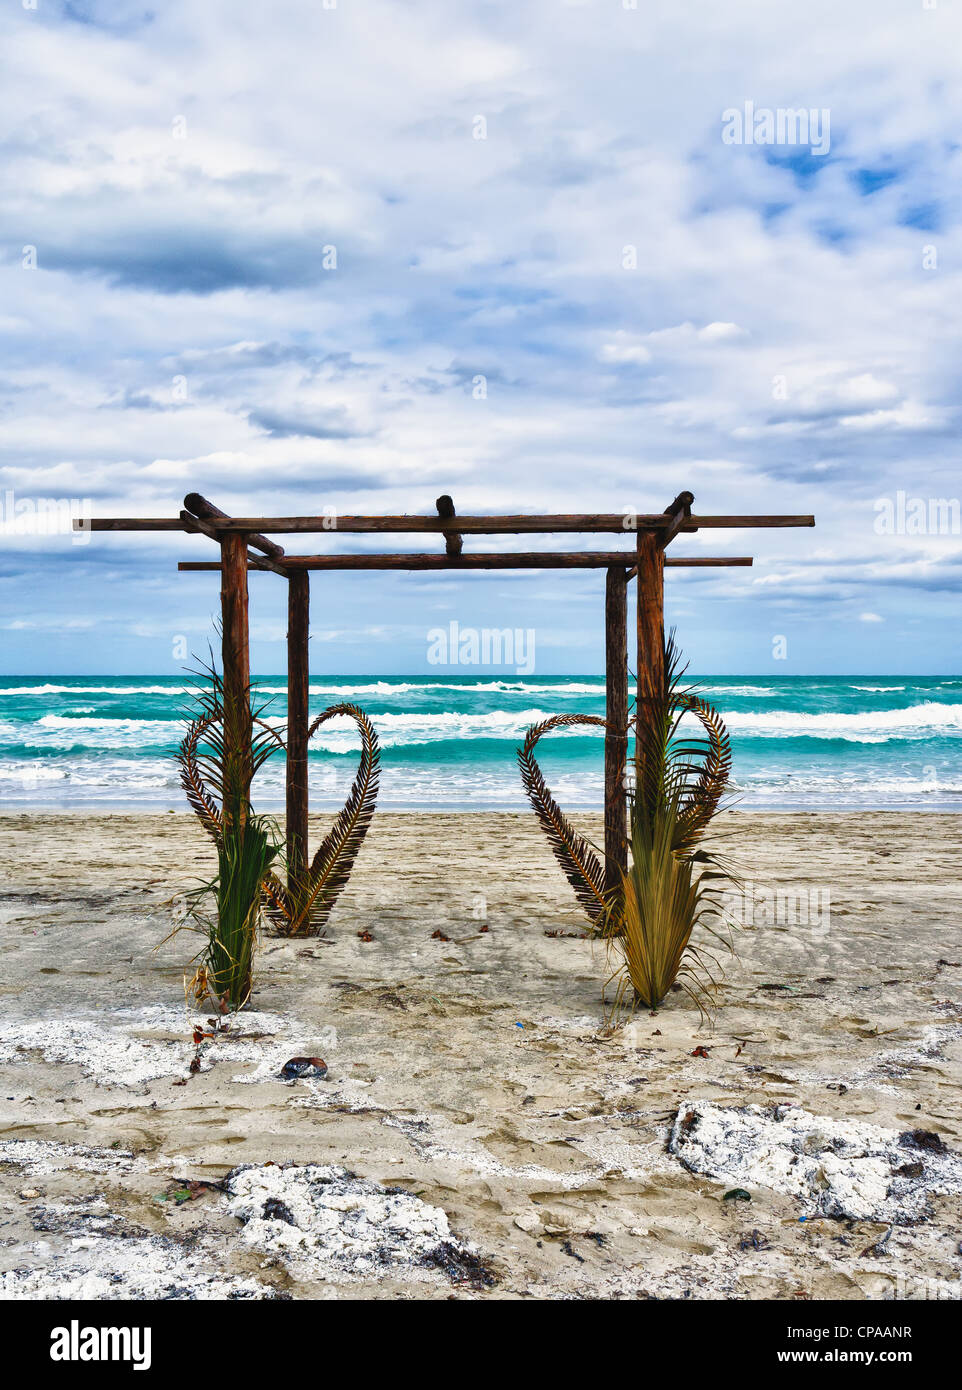 Wedding archway arranged on the sand in preparation for a beach wedding ceremony - Stock Image